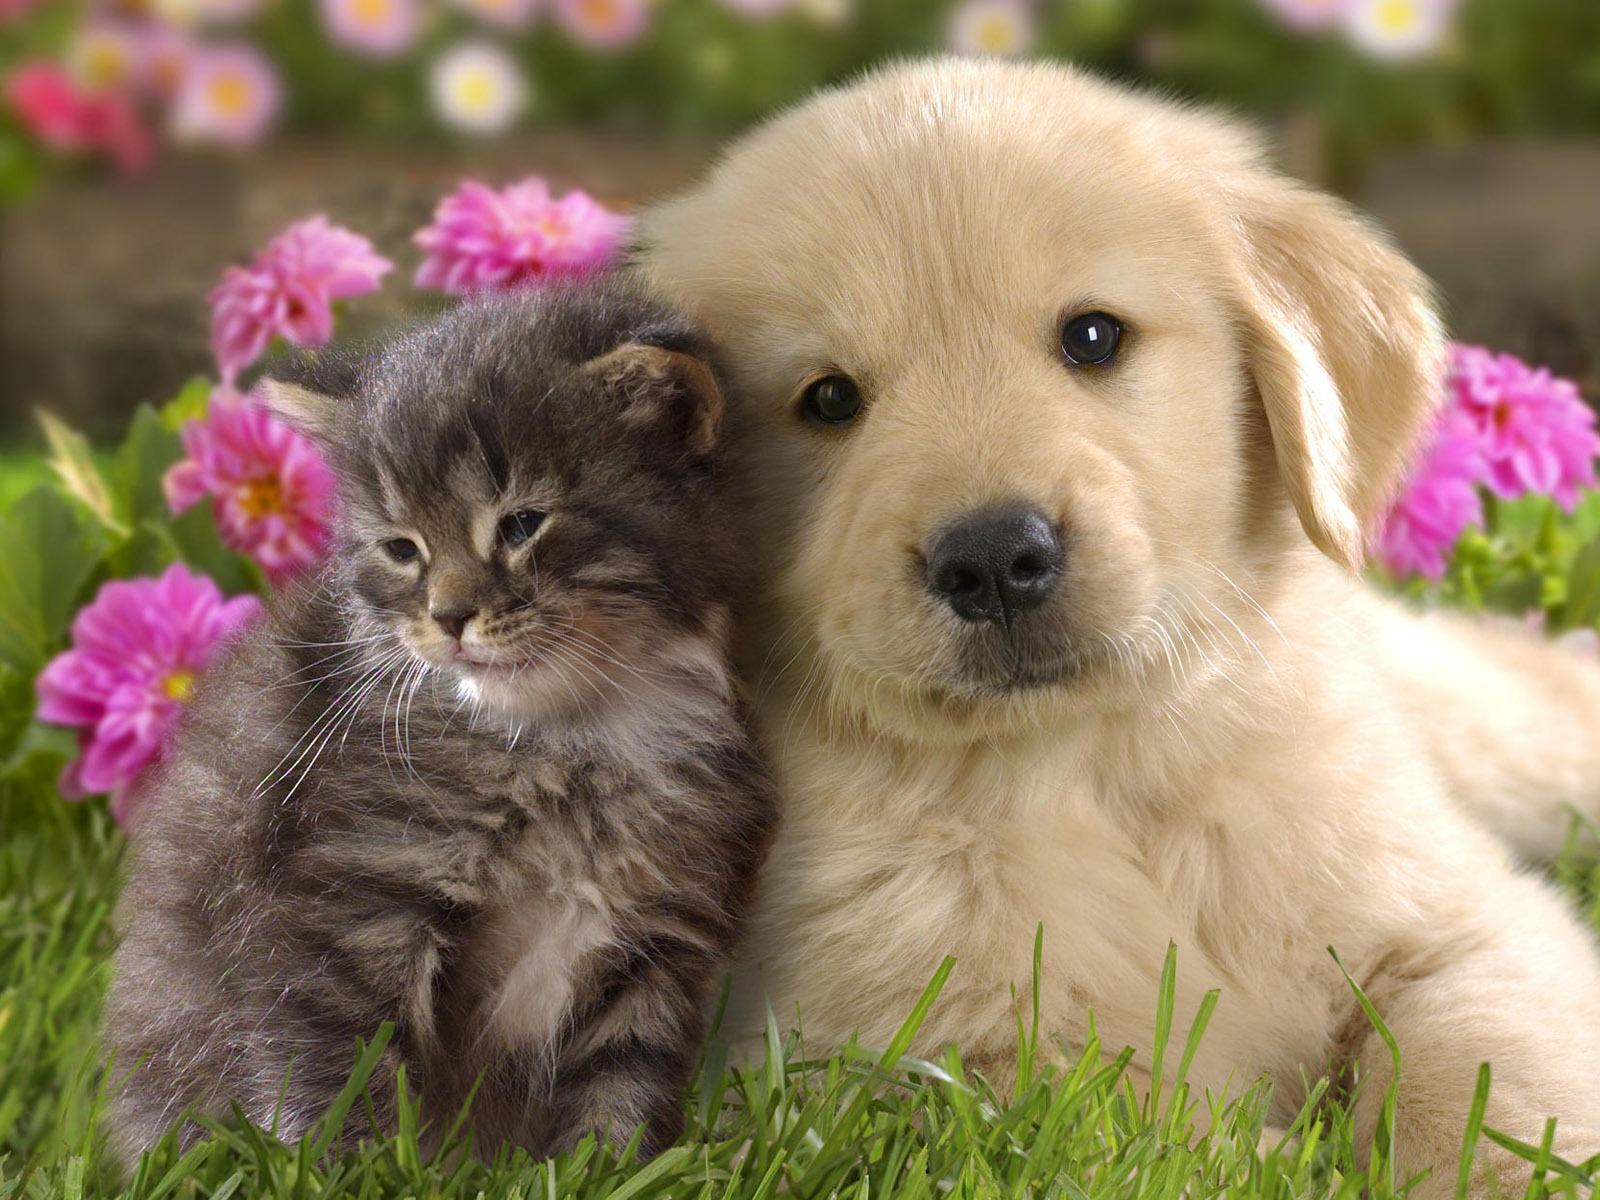 Cute Cat Dog Friendship HD Wallpaper